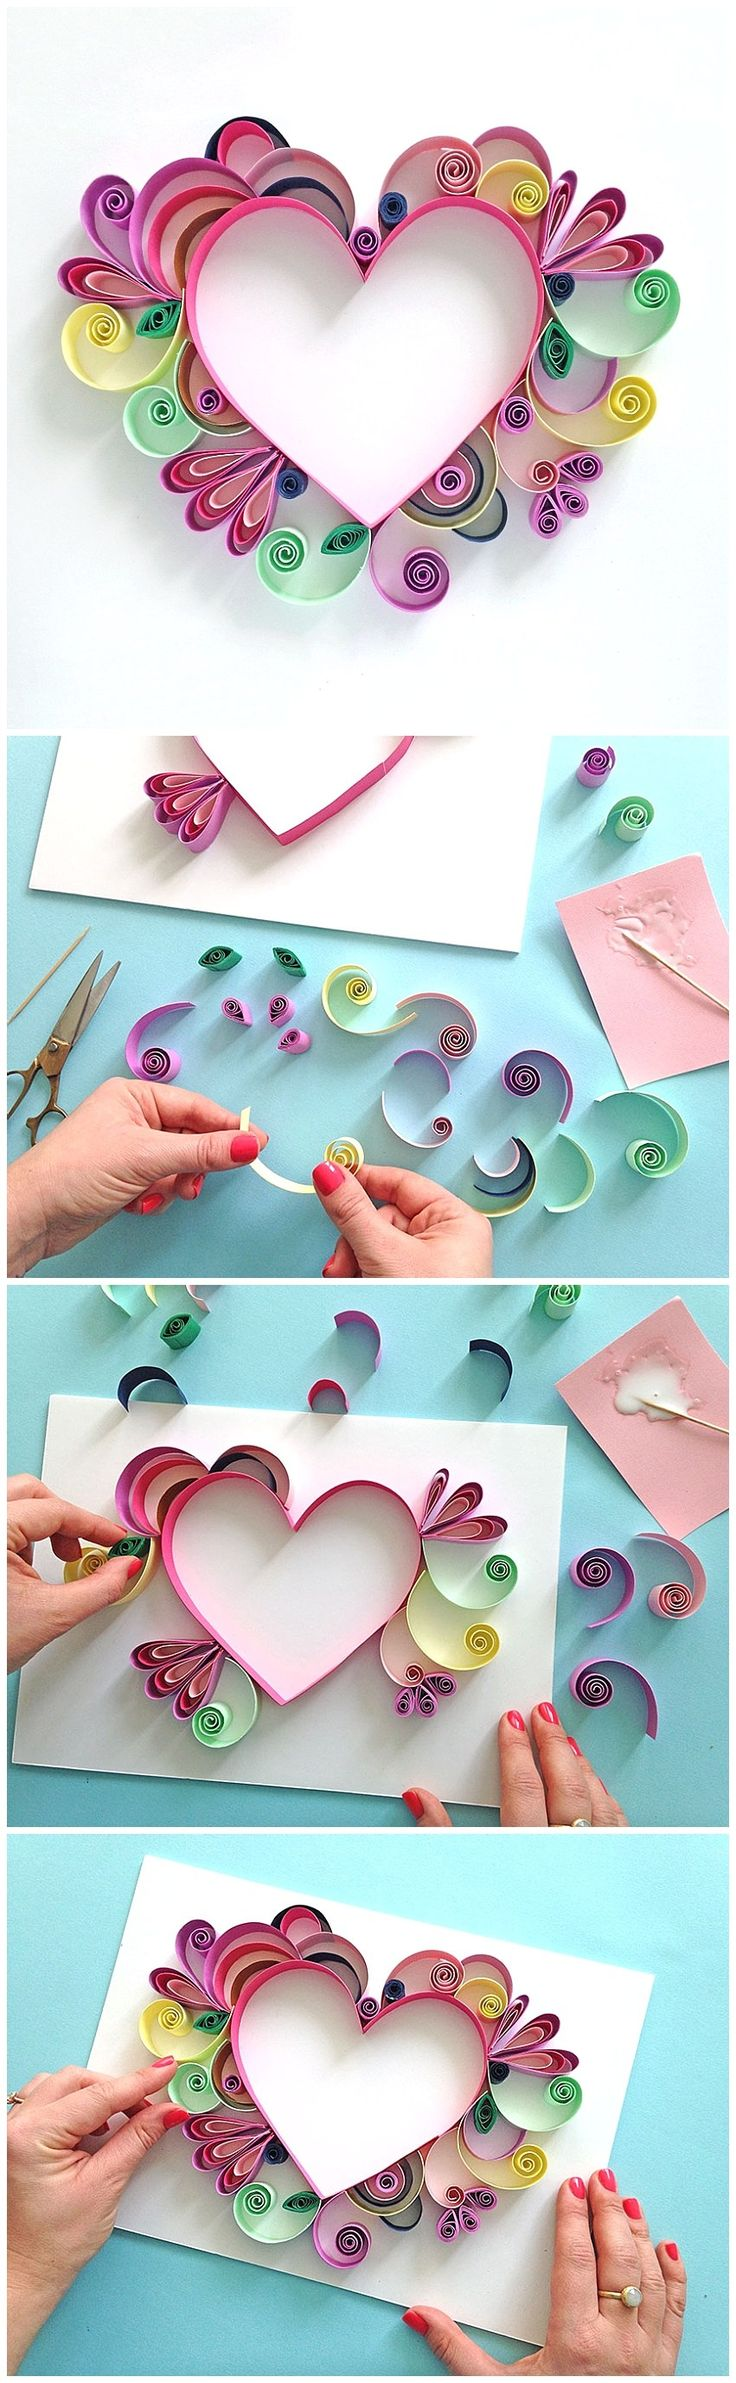 Best 25 easy paper crafts ideas on pinterest arts and for Easy diy arts and crafts